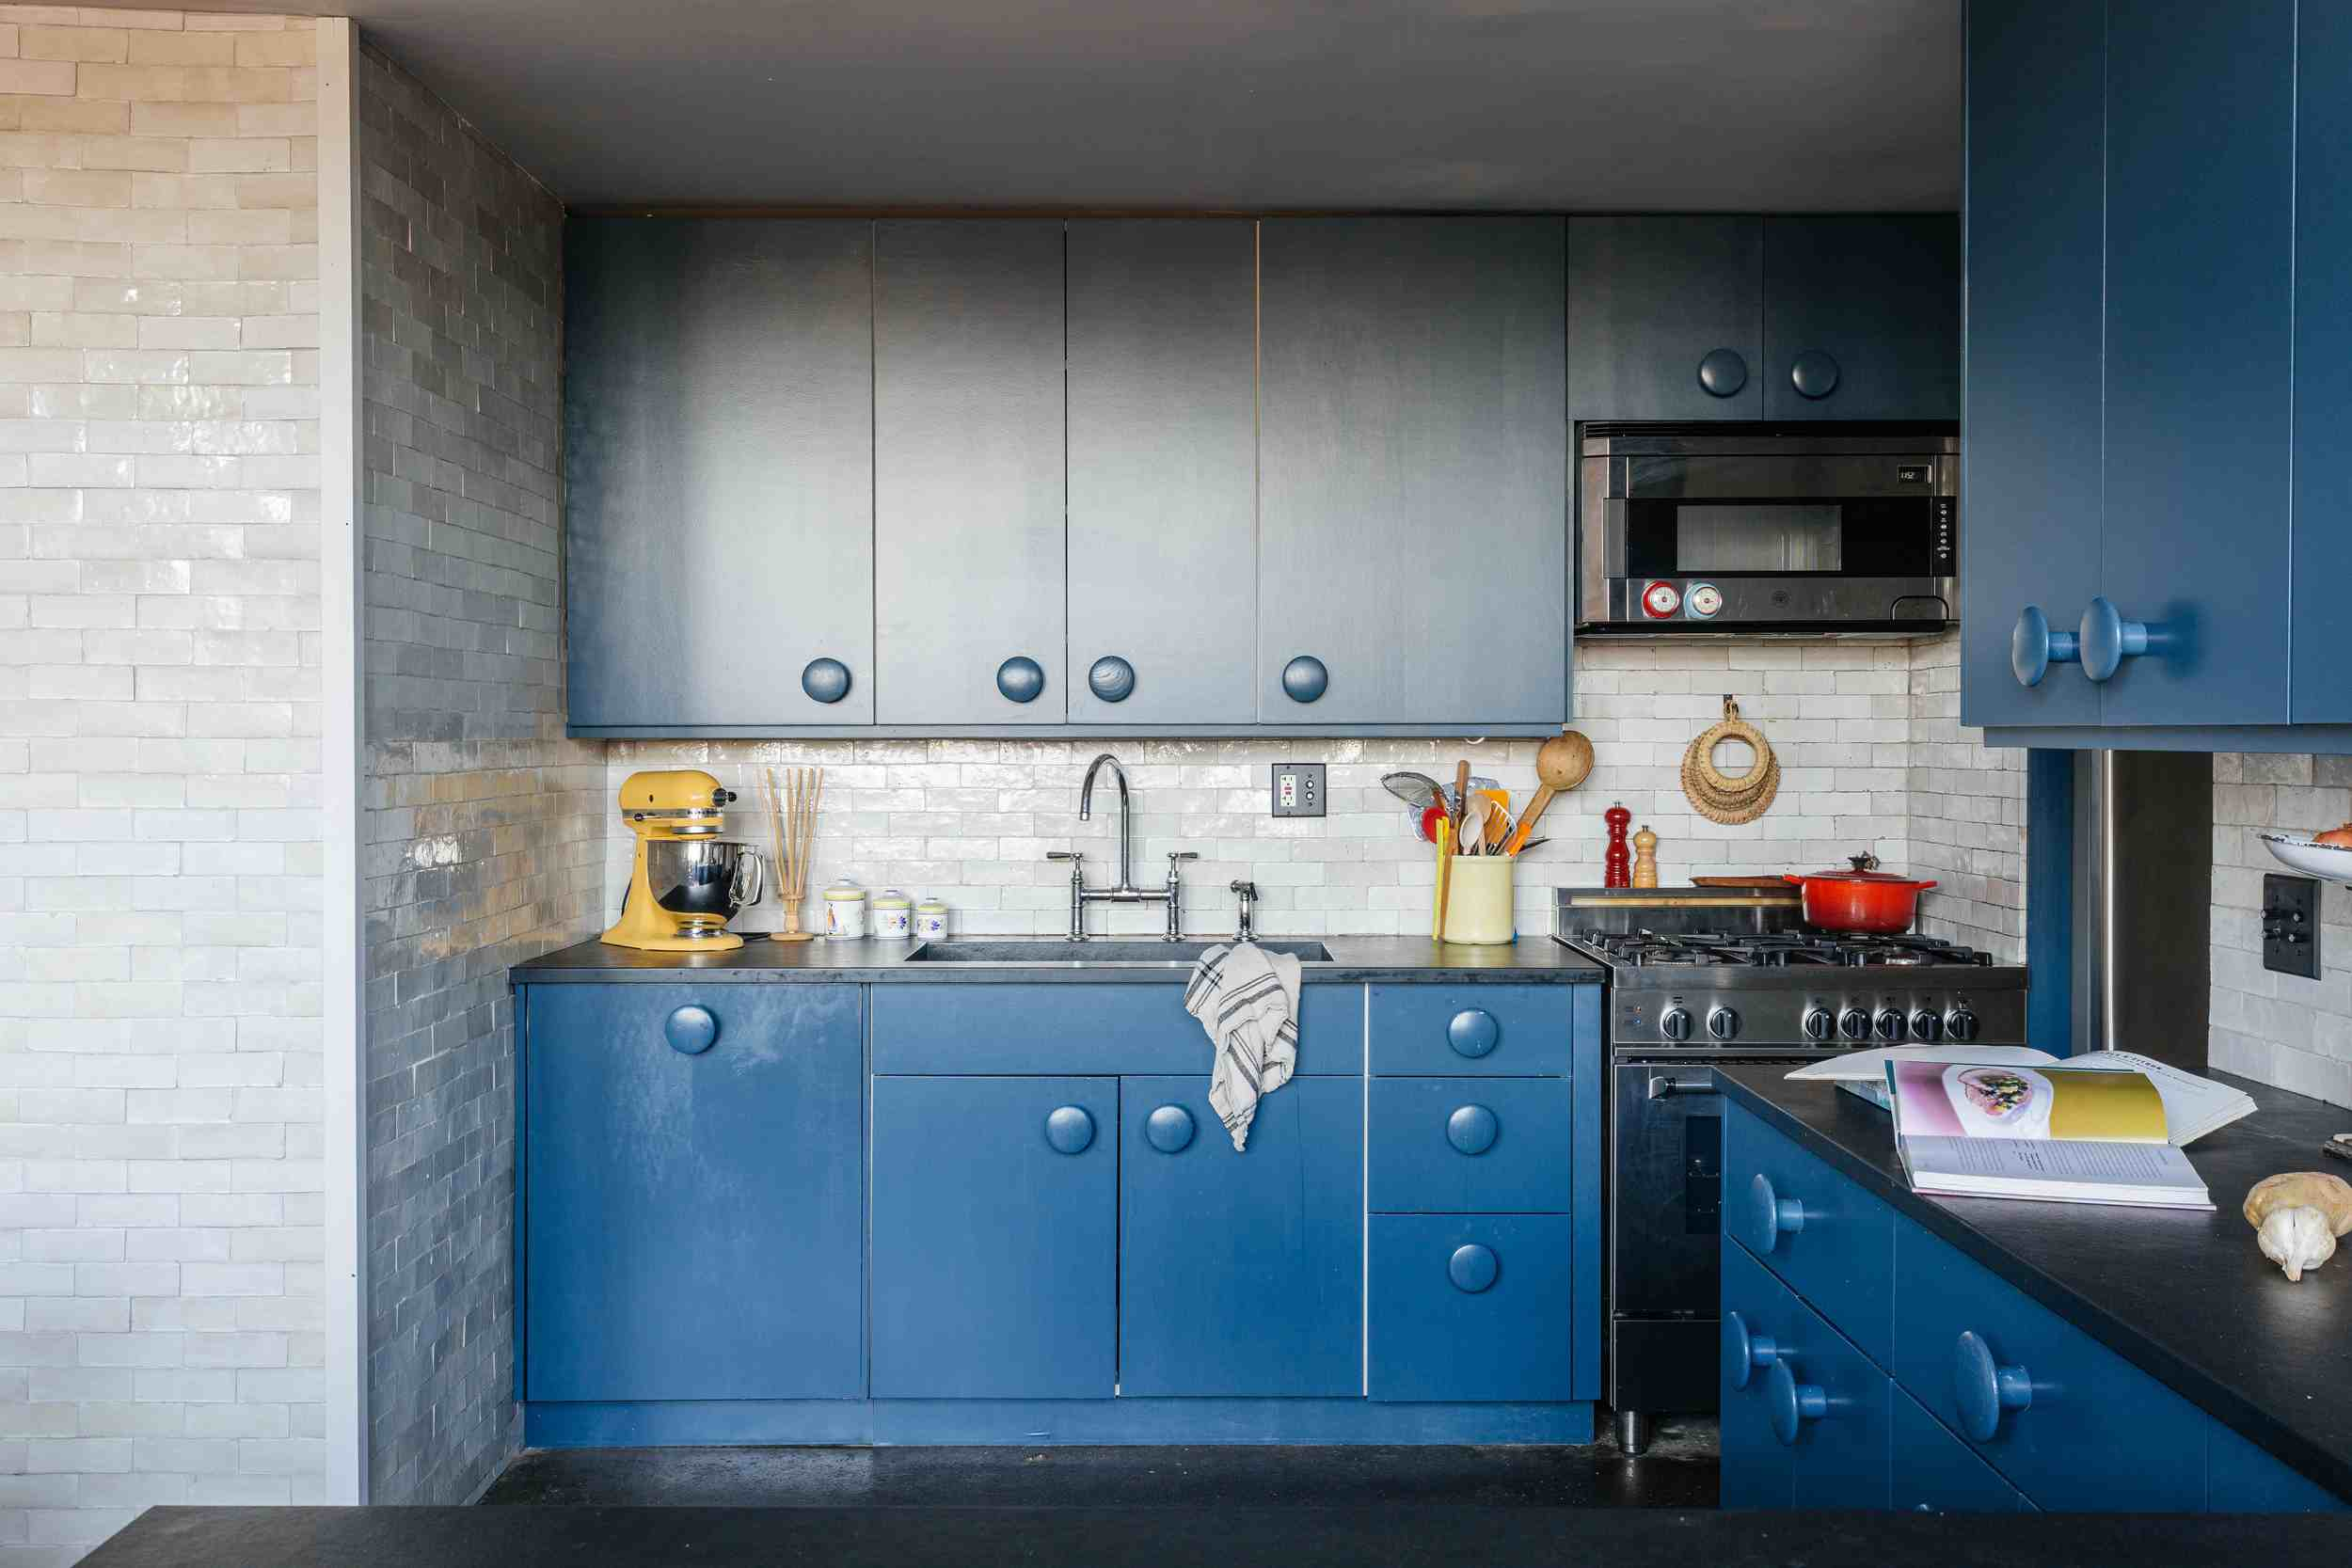 Deep blue kitchen cabinets with large, round knobs